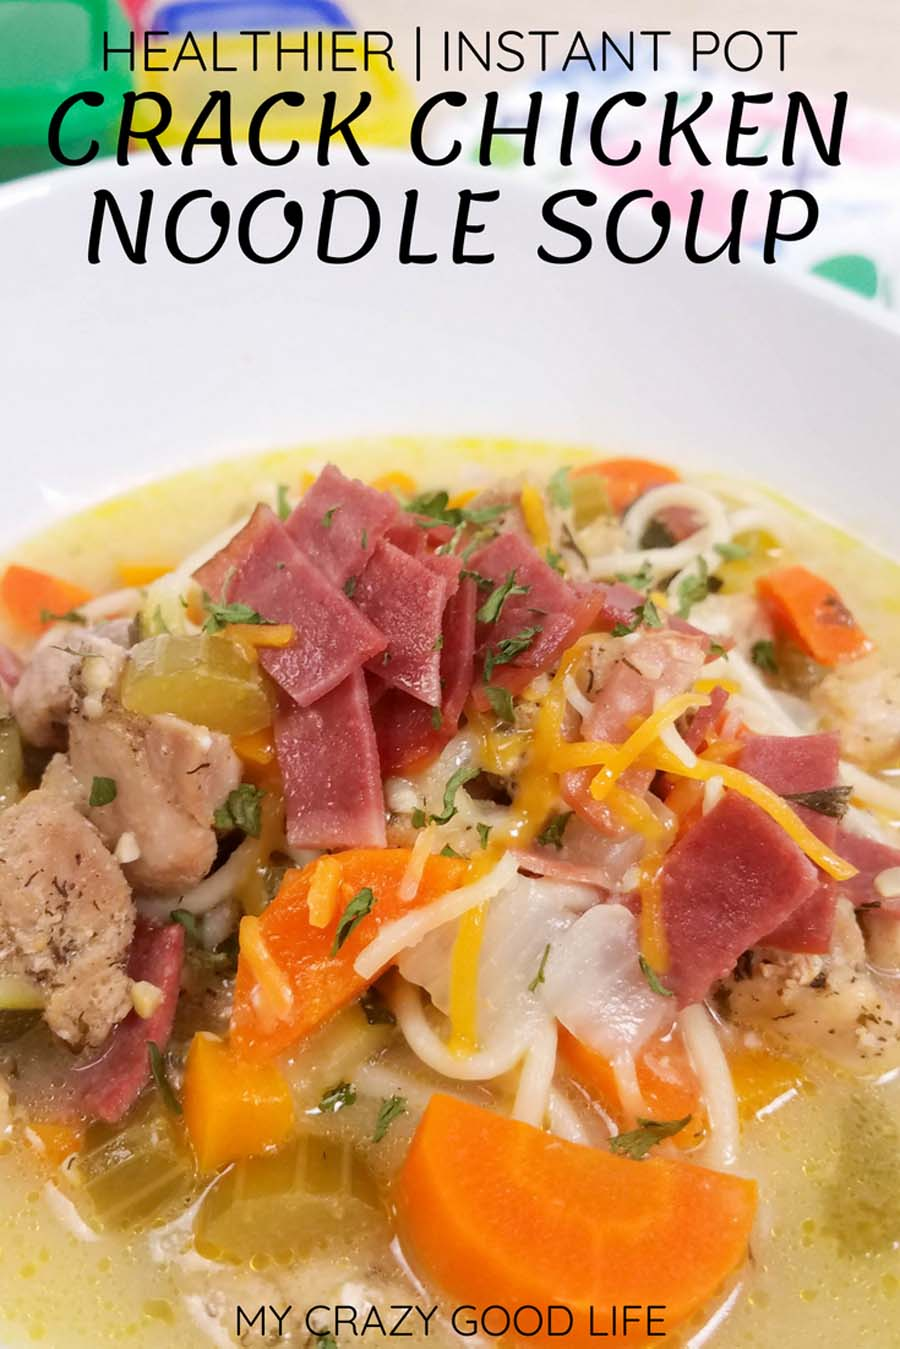 If you love Crack Chicken, you're going to love this homemade Crack Chicken Noodle Soup Recipe! The mix of cheese, bacon, and ranch in this comforting homemade soup is perfect on a chilly day. This is healthy Crack Chicken Soup, so you won't feel bad about saving the leftovers to eat all week! Cracked Out Chicken | Instant Pot Crack Chicken Soup | Slow Cooker Crack Chicken Soup | Healthy Soup Recipe #21dayfix #healthy #weightloss #weightlossrecipes #2bmindset #beachbody #healthysoup